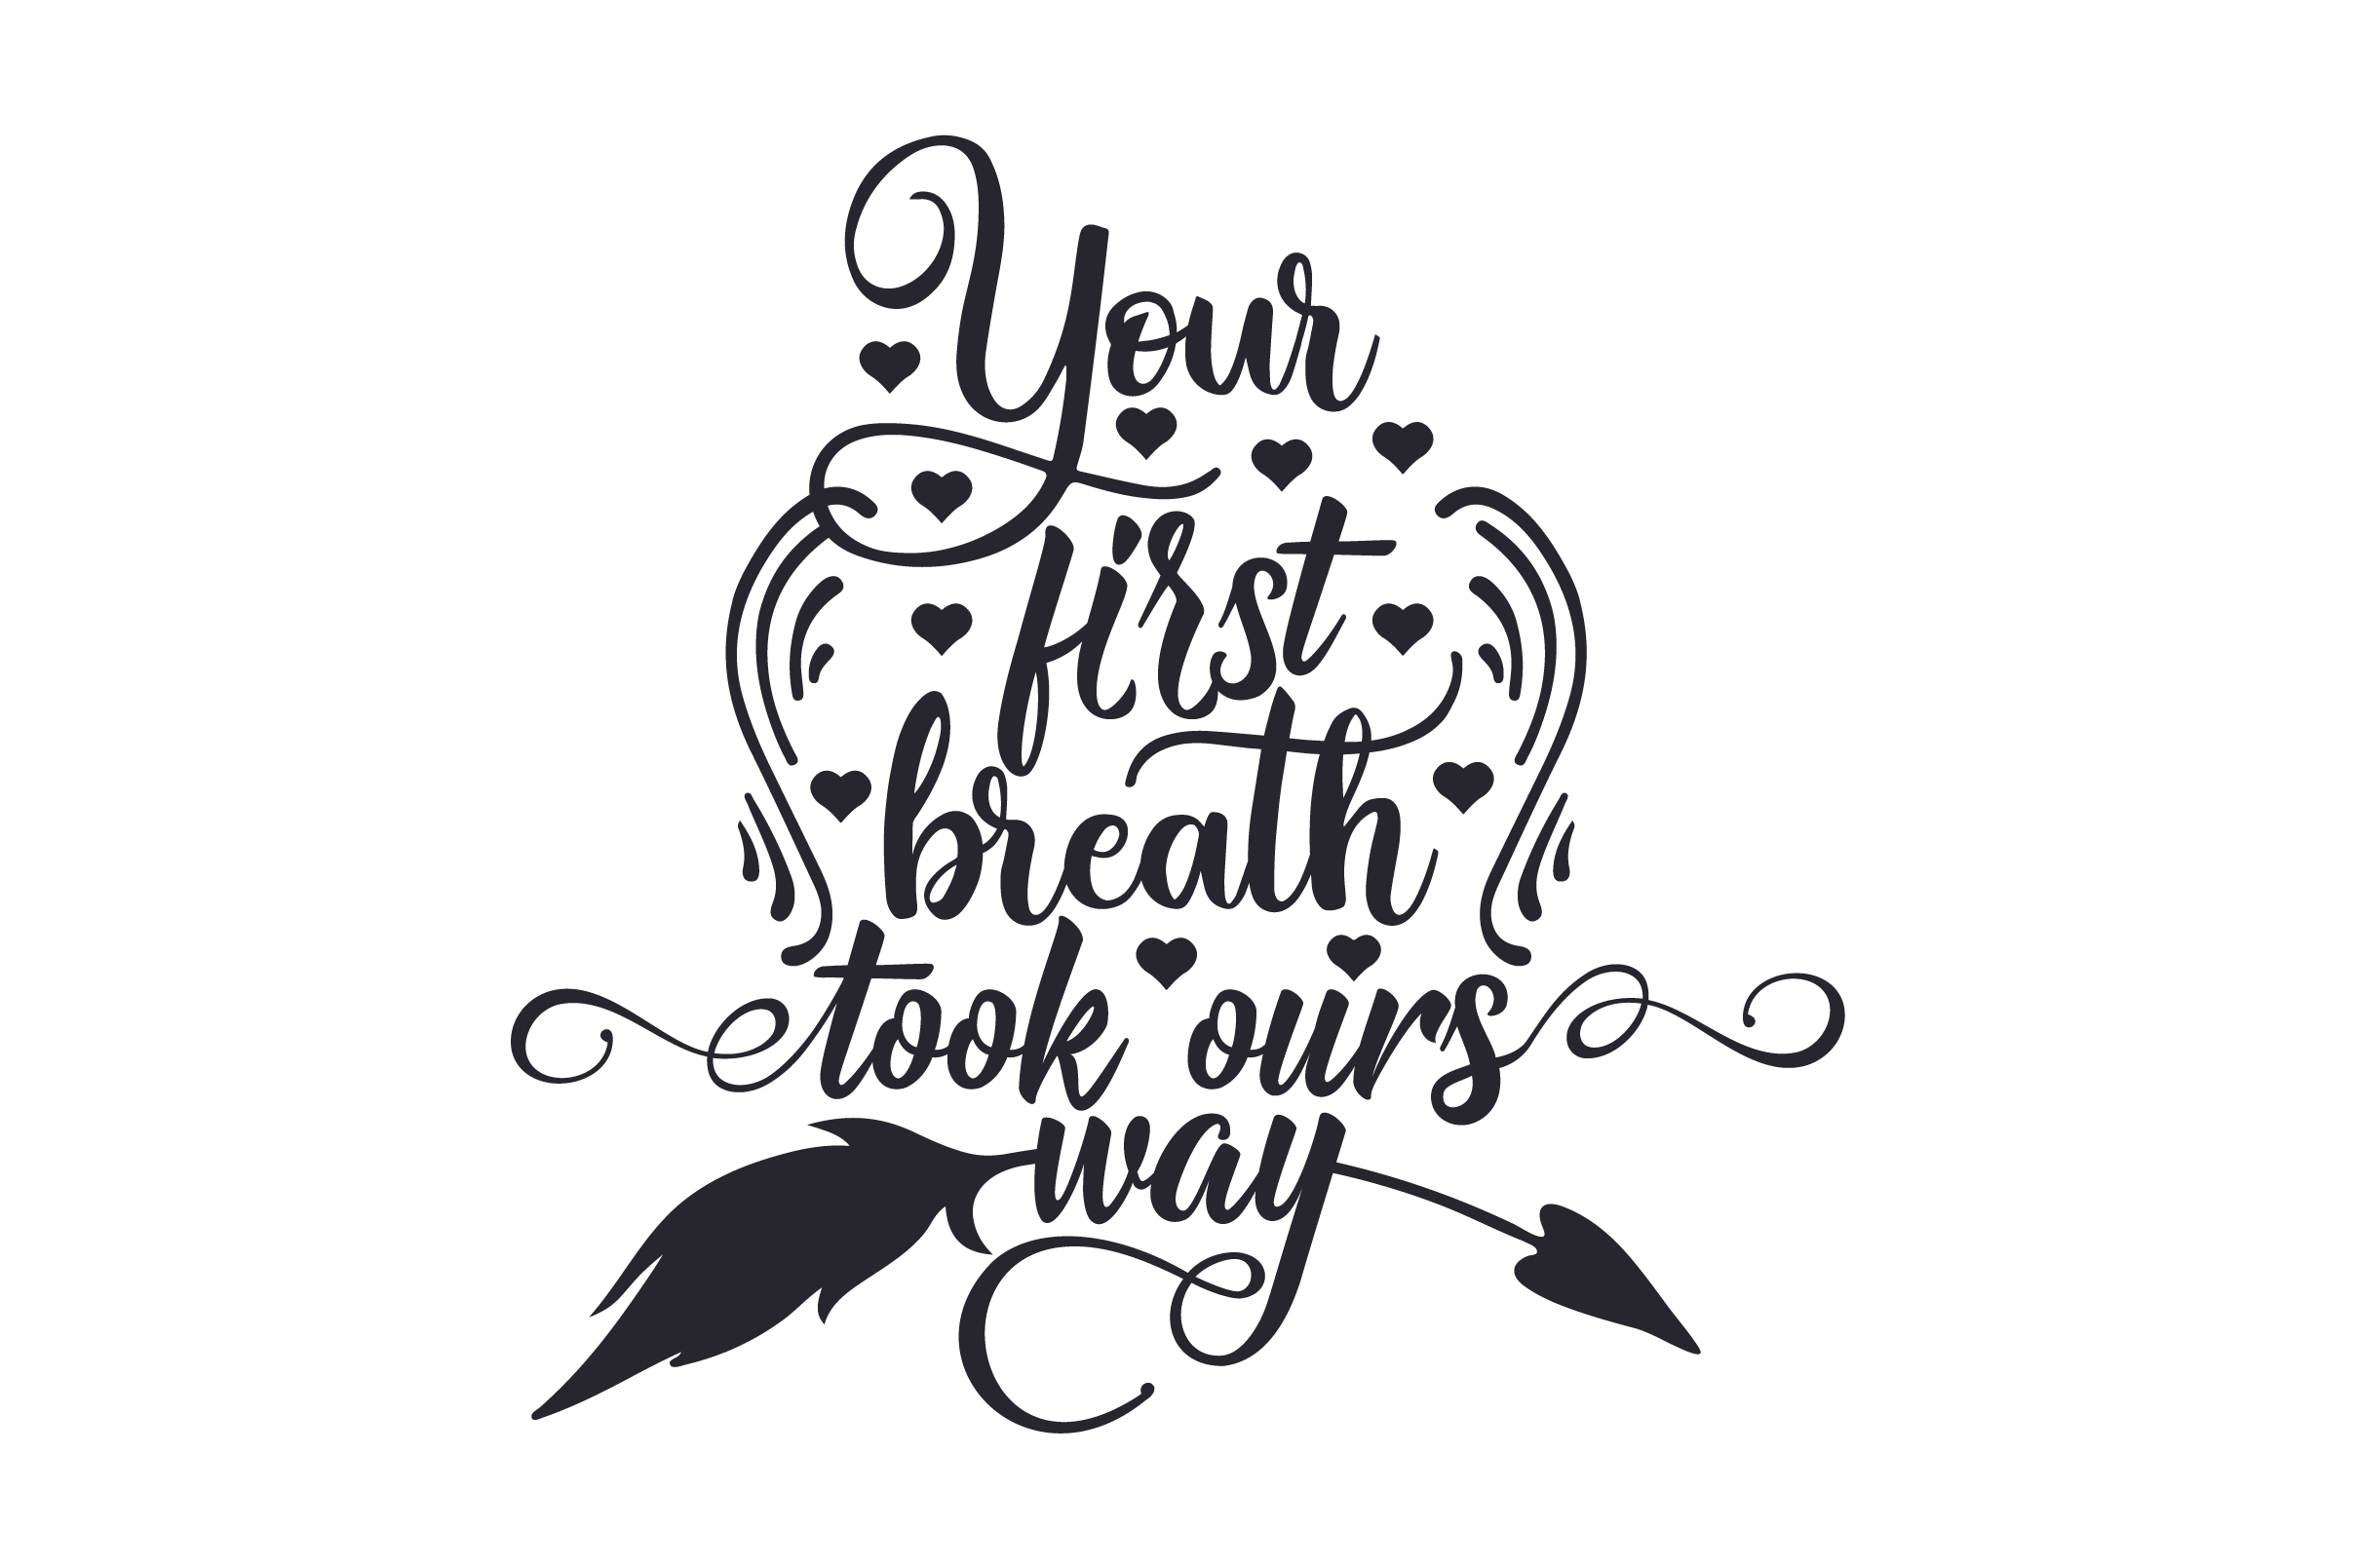 Download Free Your First Breath Took Ours Way Svg Cut File By Creative Fabrica for Cricut Explore, Silhouette and other cutting machines.